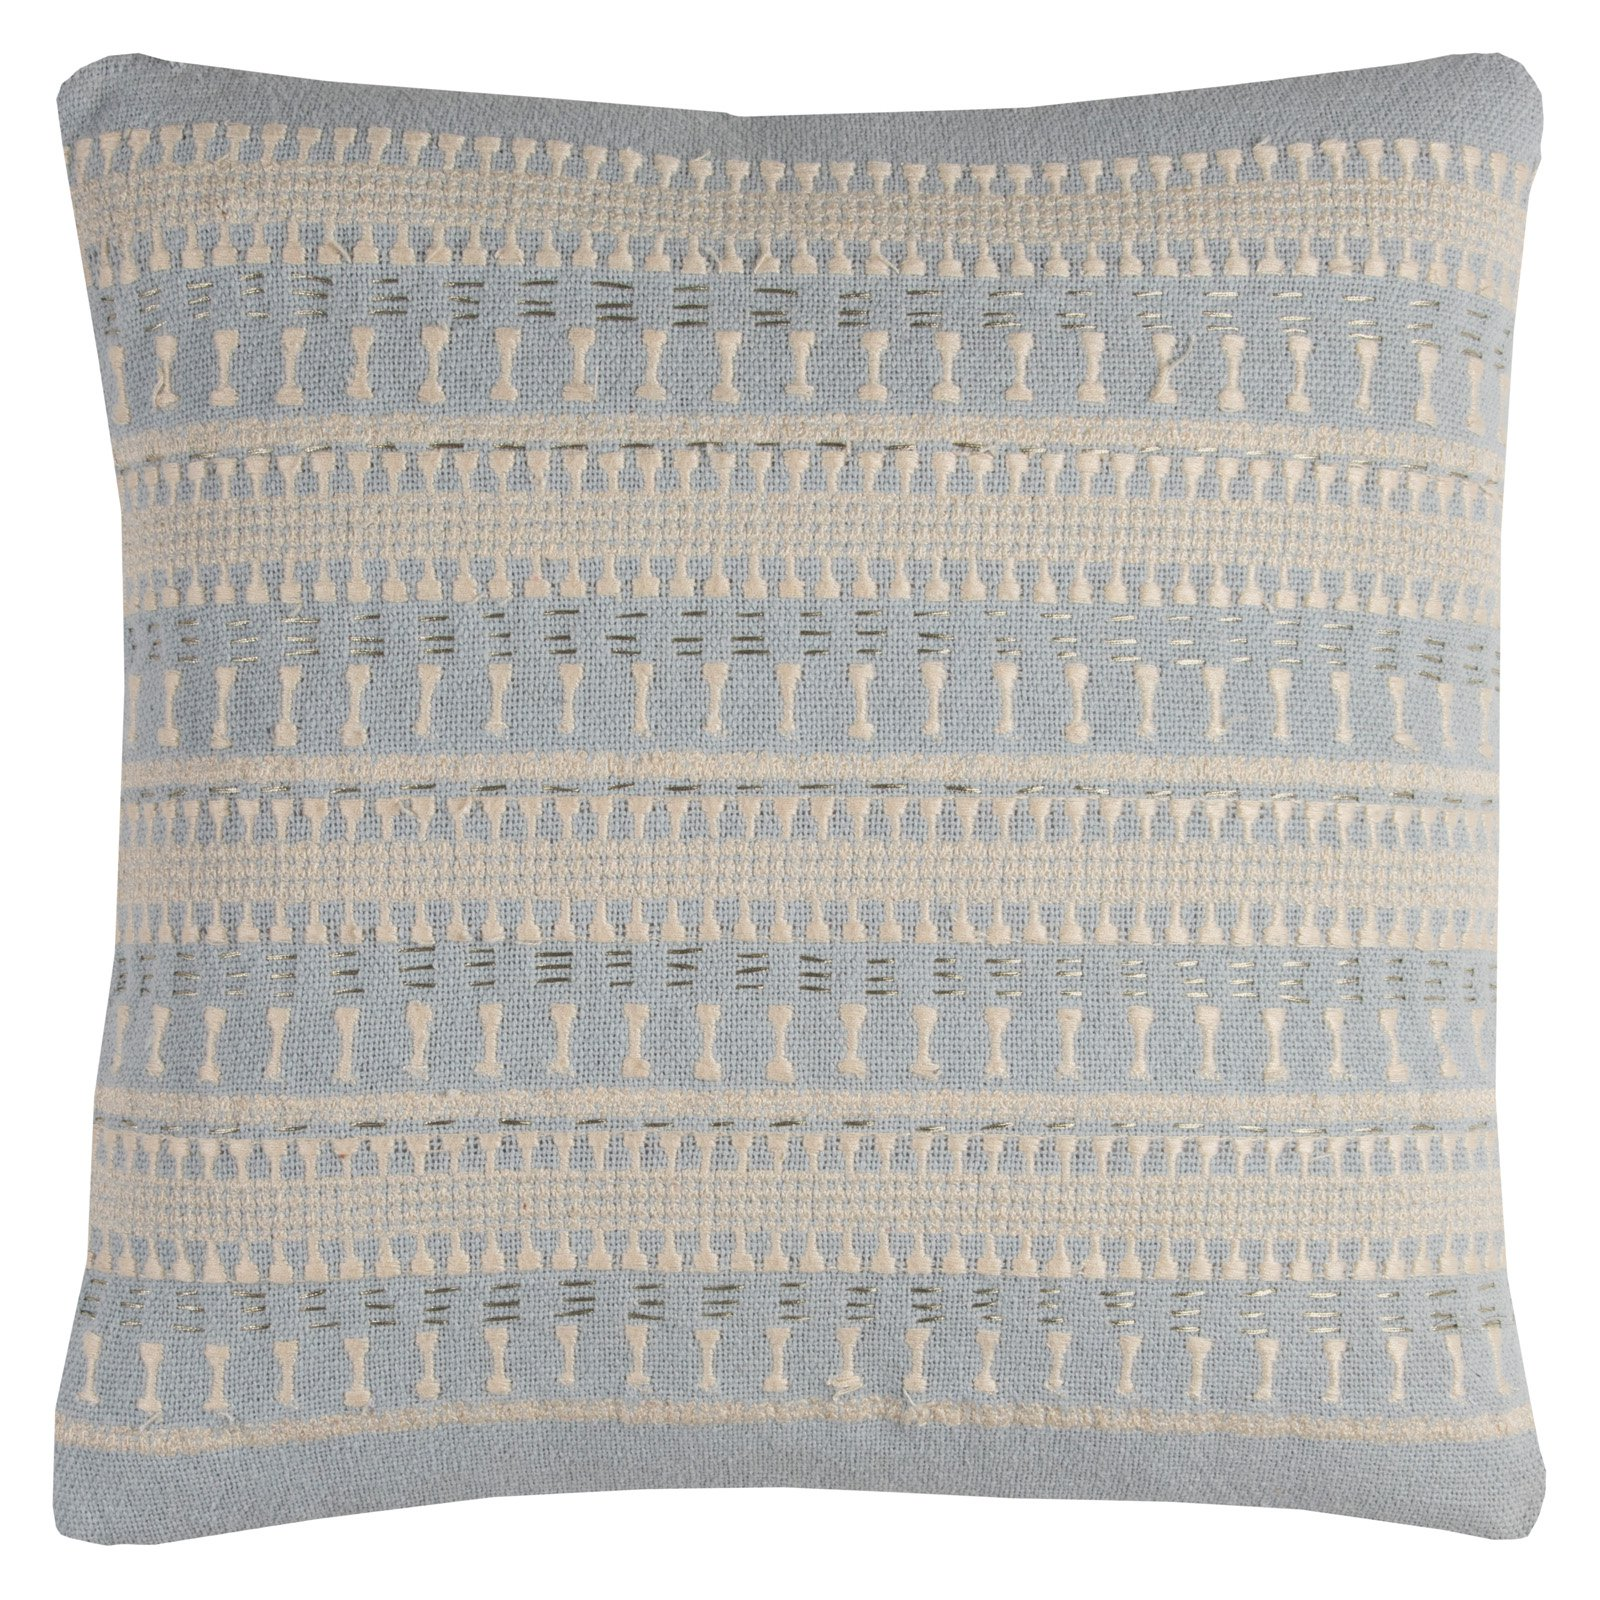 "Rizzy Home Stripe Textured Cotton Decorative Throw Pillow, 20"" x 20"", Light Blue"